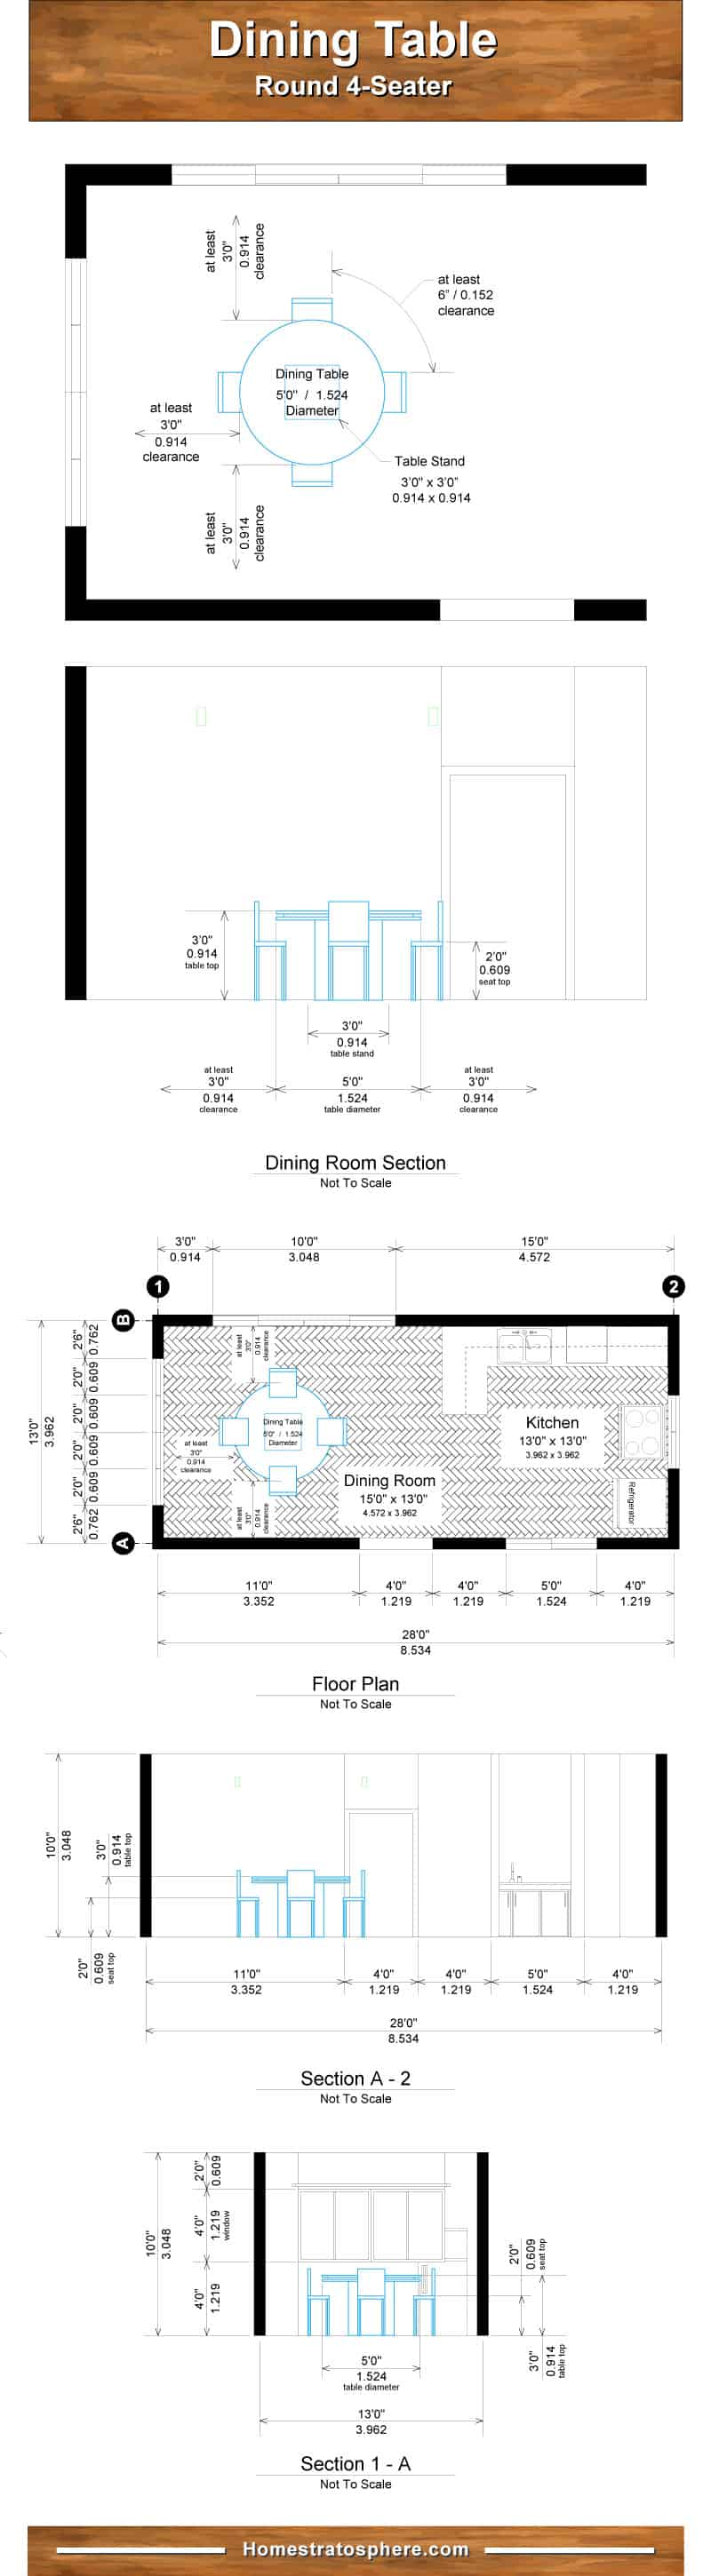 Round dining table dimensions chart for 4 people